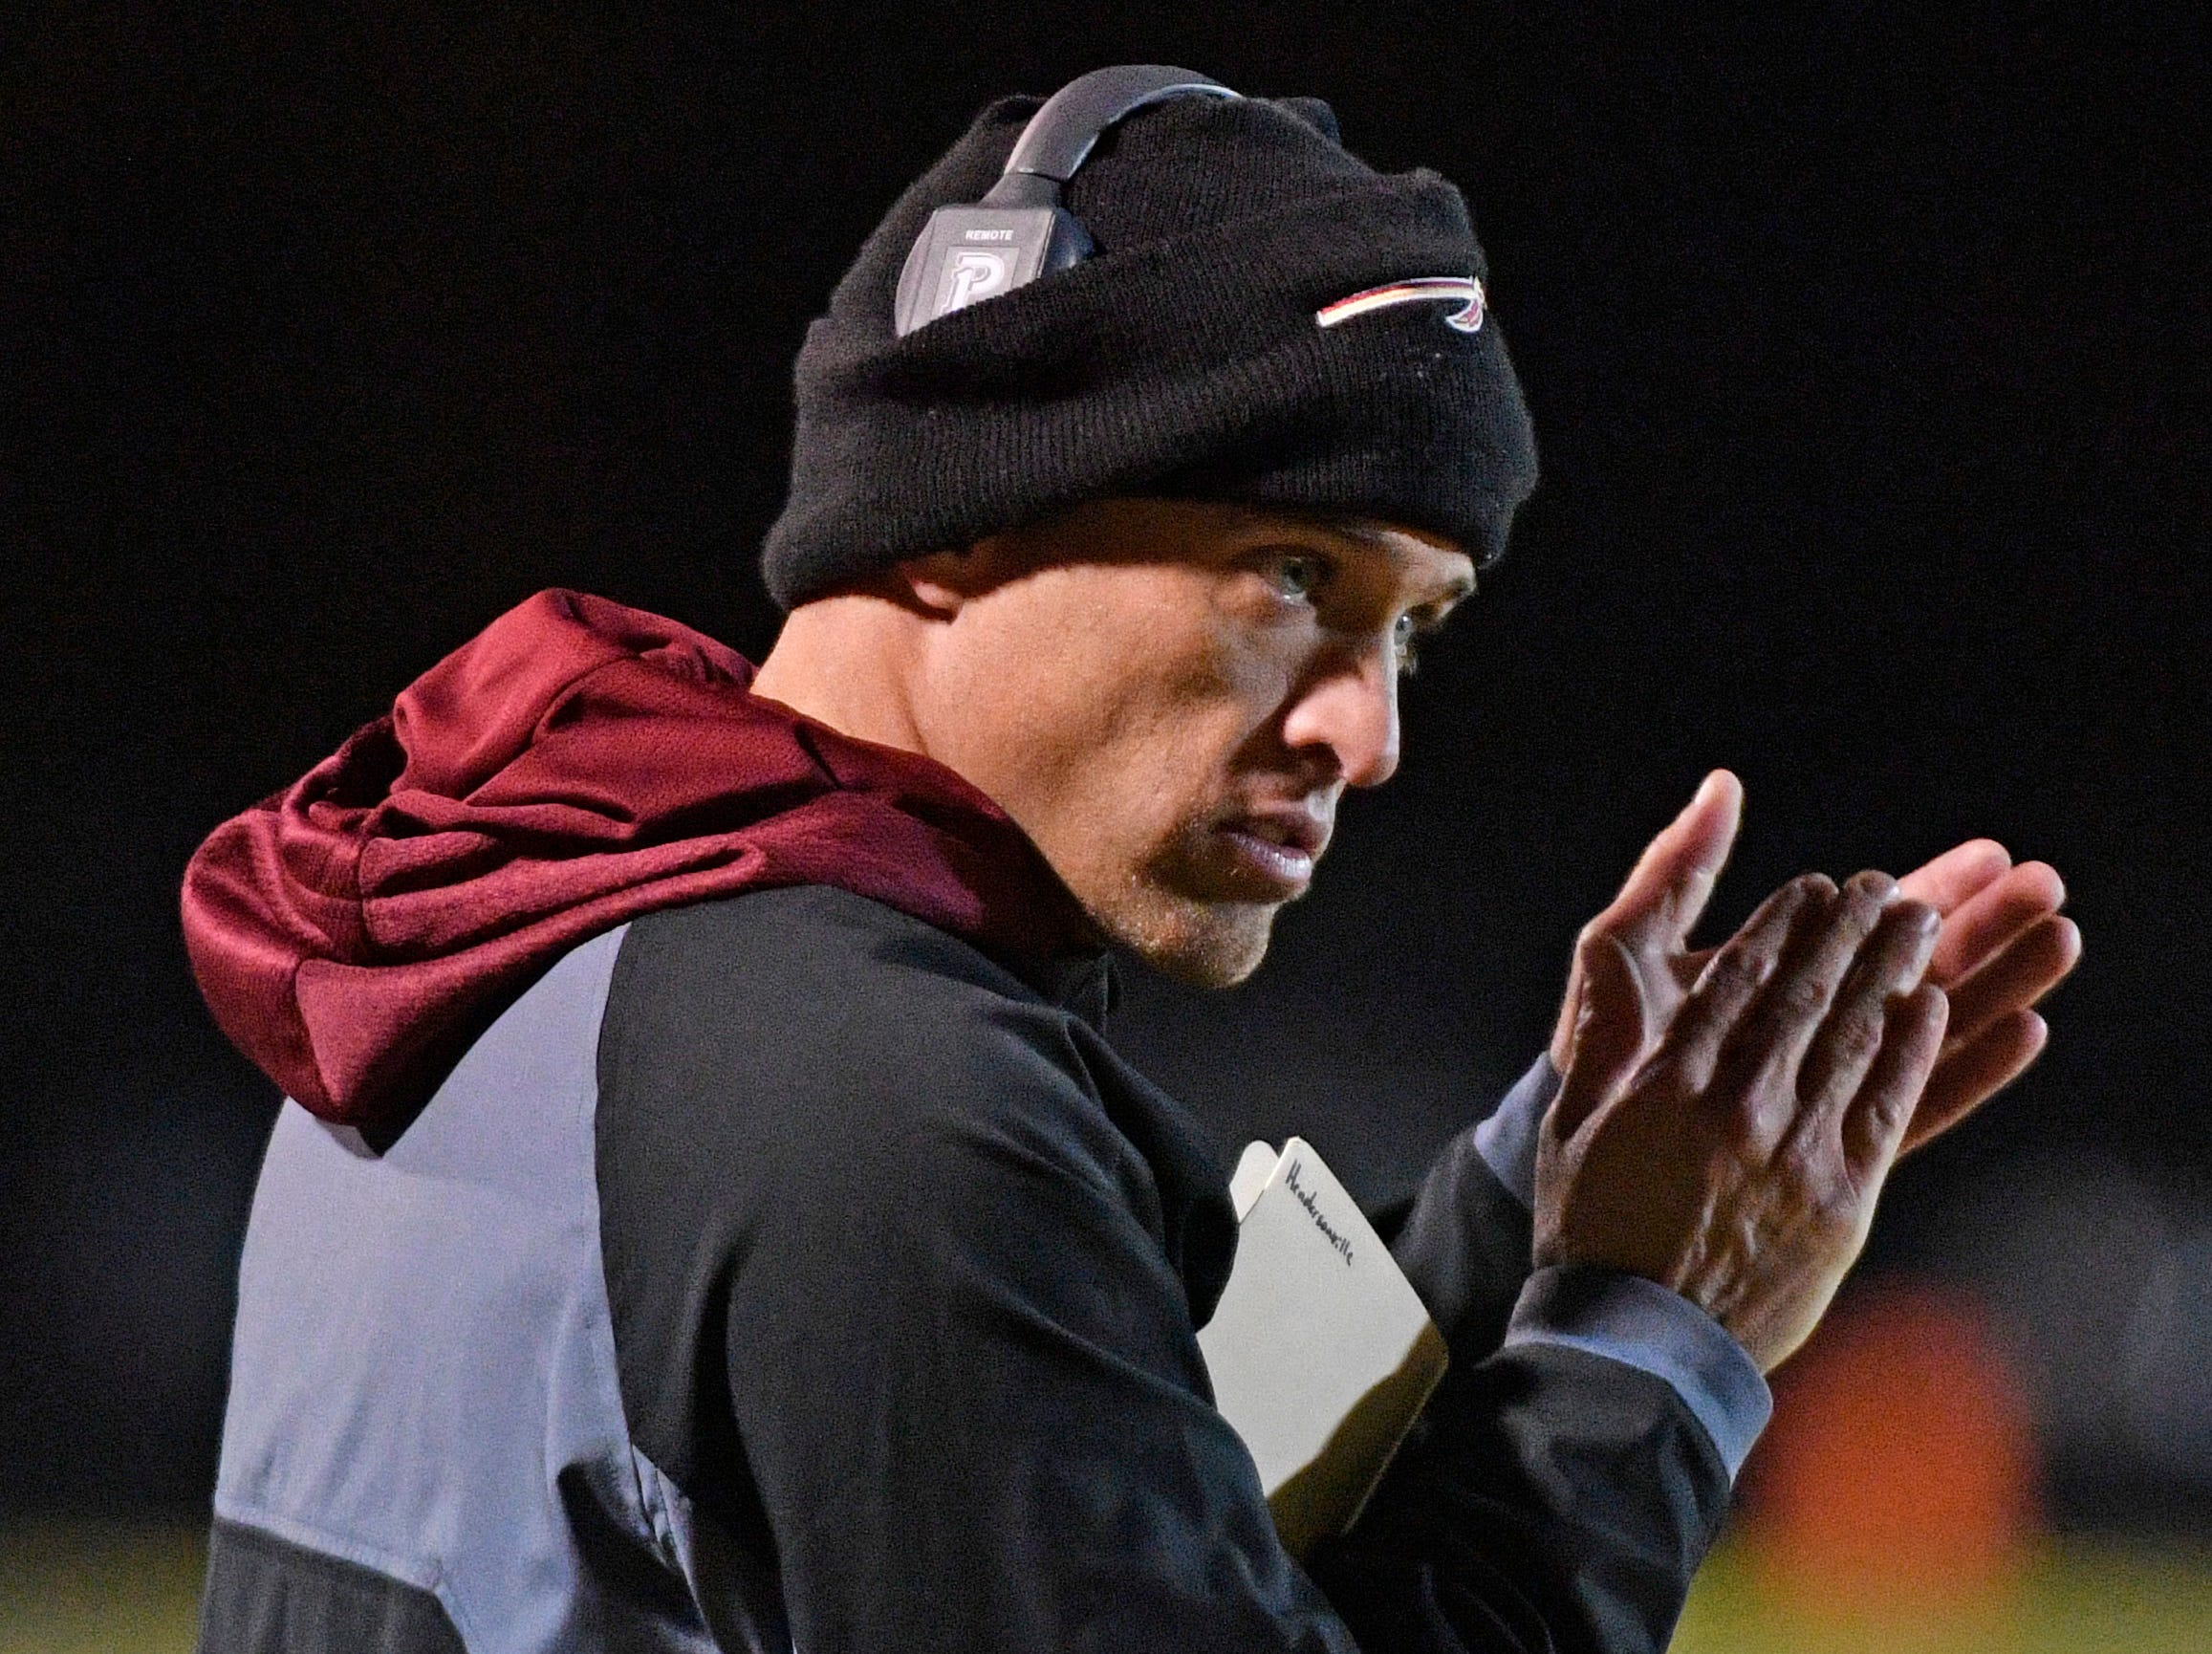 Riverdale Head Coach Will Kriesky encourages his players as Riverdale plays at Hendersonville Friday Nov. 2, 2018, in Hendersonville, Tenn.